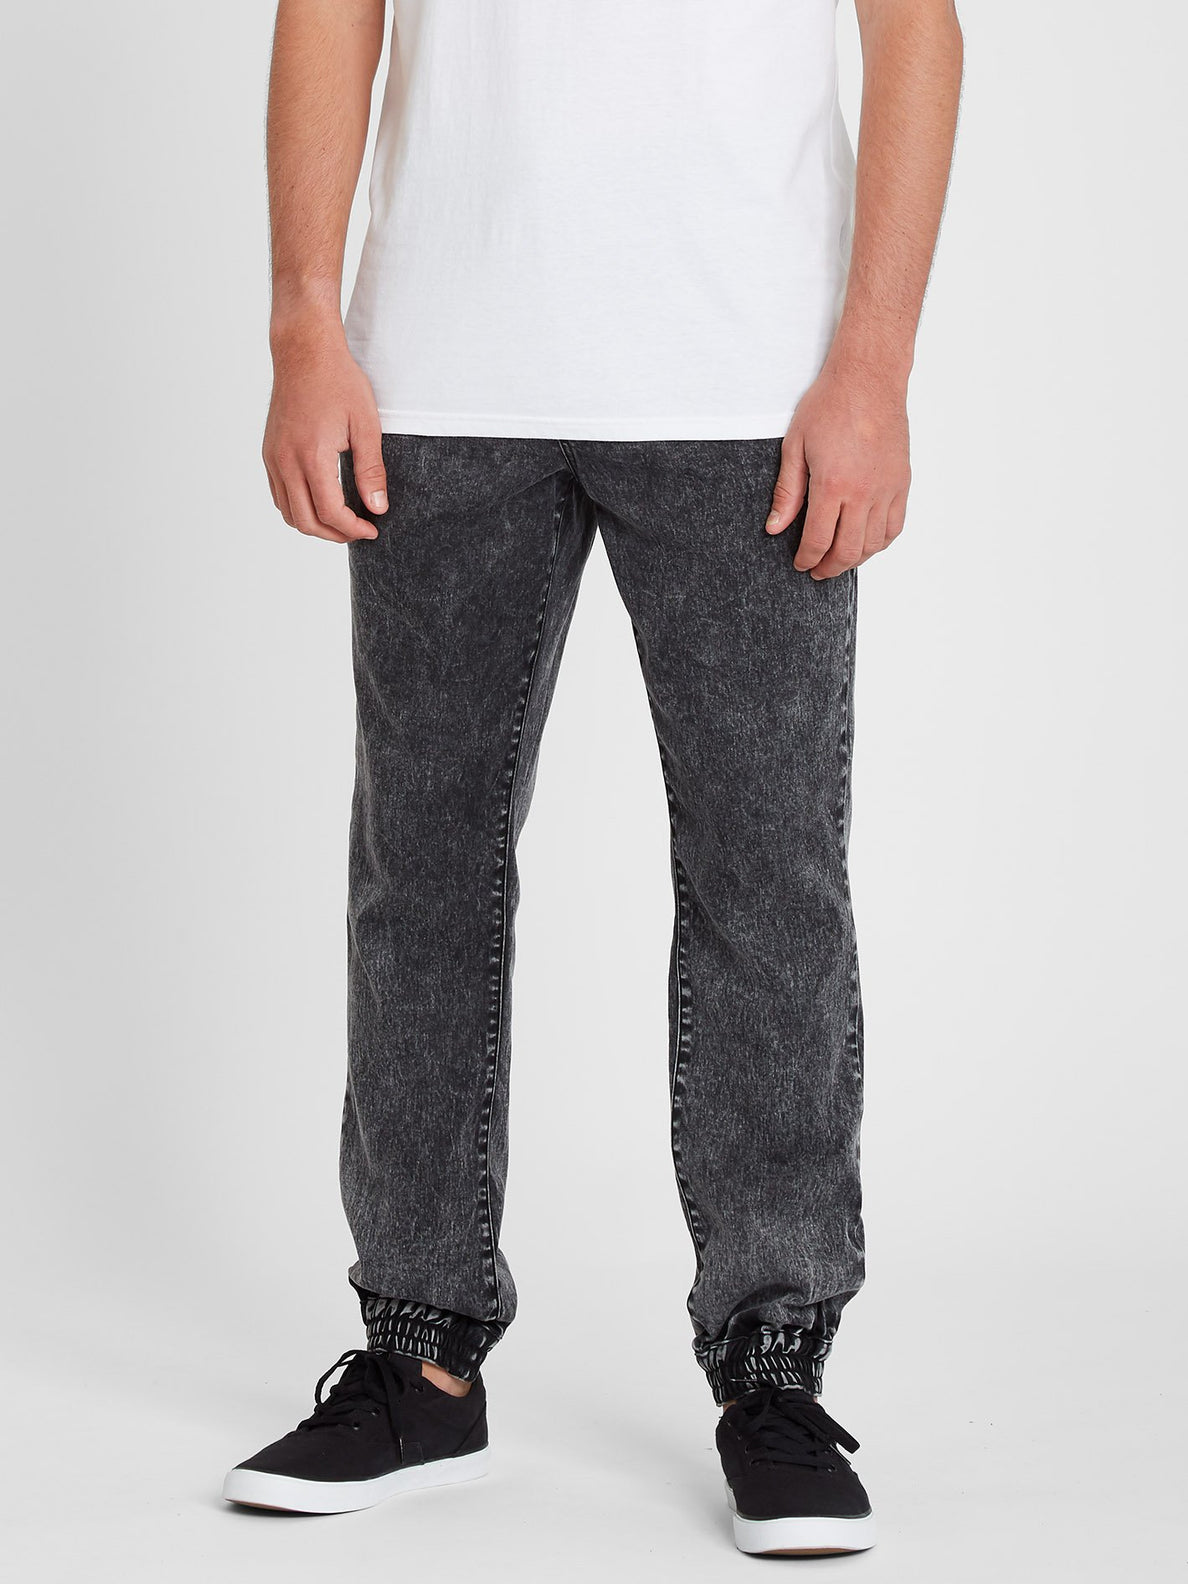 Denim Jogger Pant - Black (A1211901_BLK) [F]